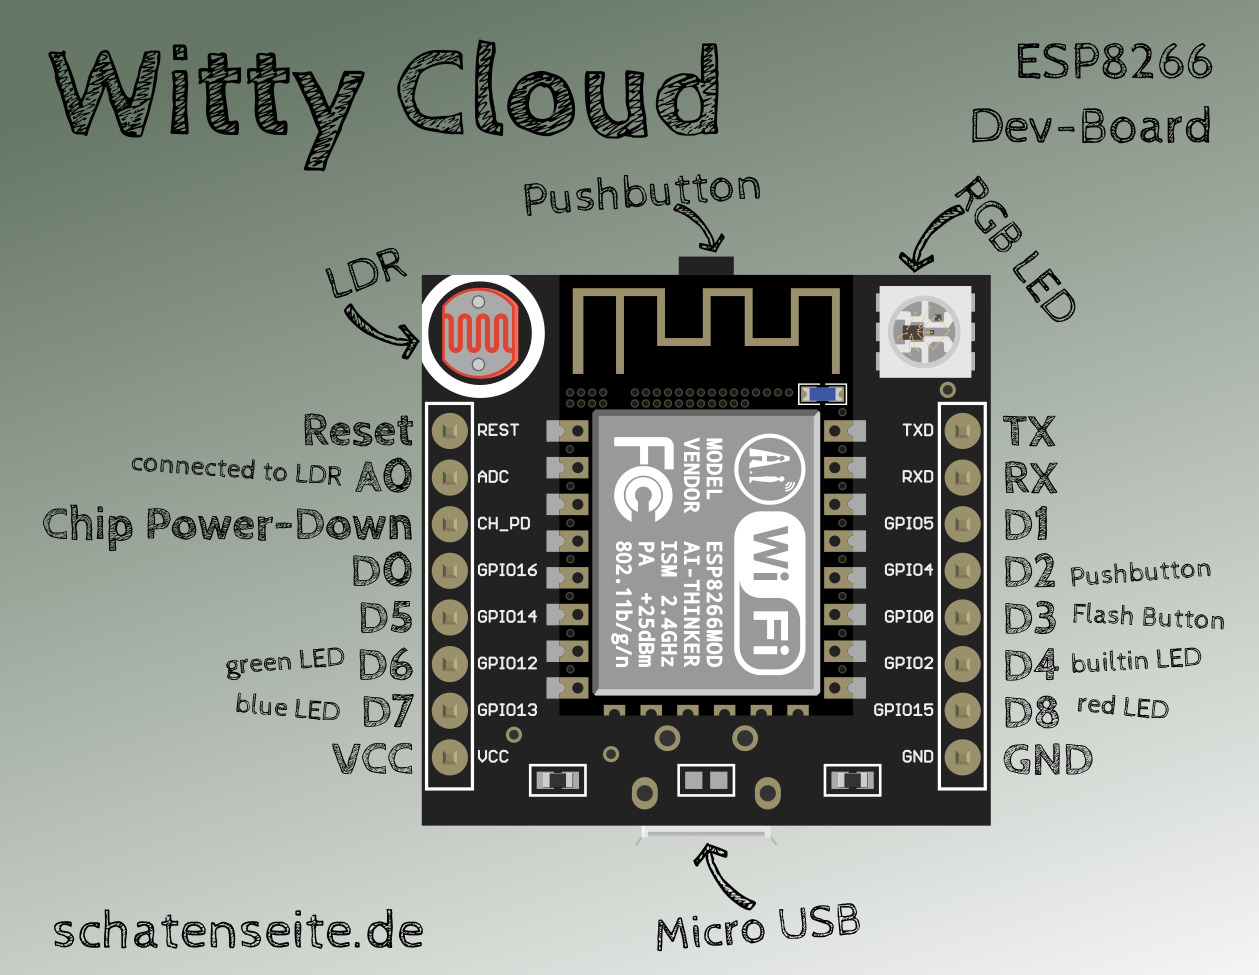 ESP8266 – Witty Cloud Module – Schatenseite